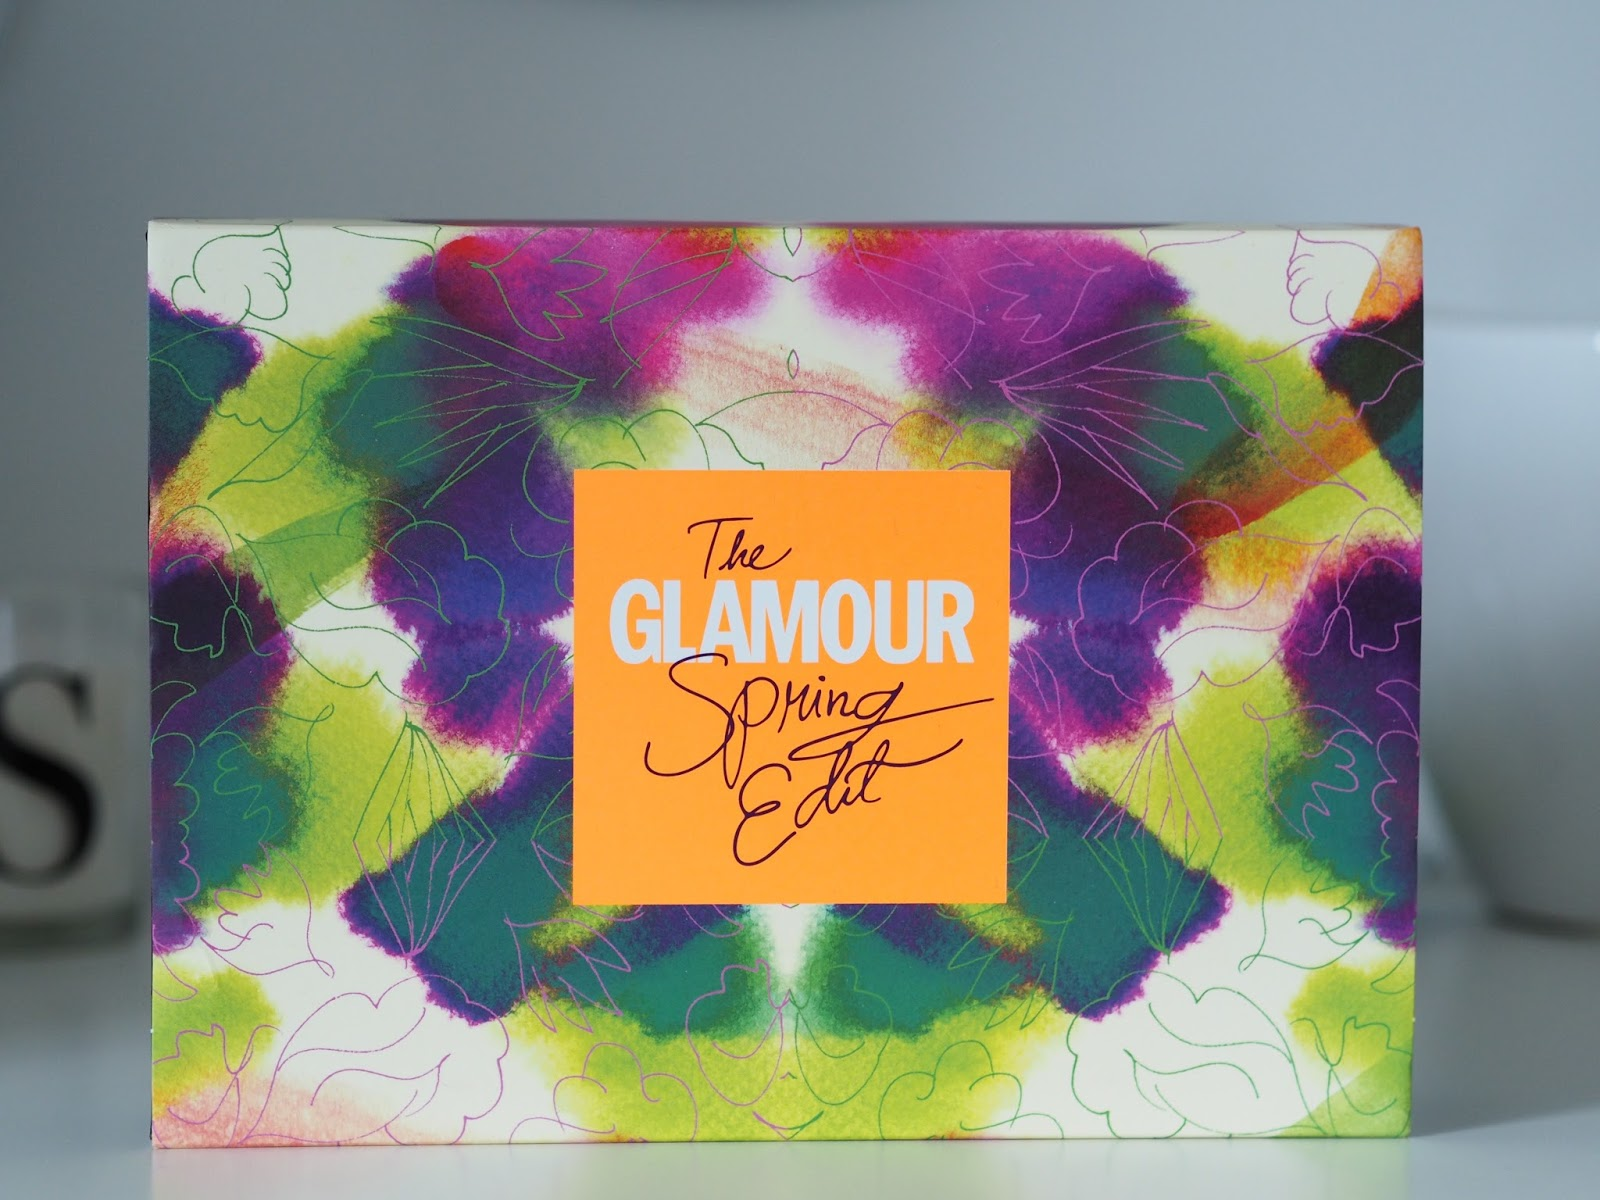 Glamour Spring edit beauty box review Latest in Beauty